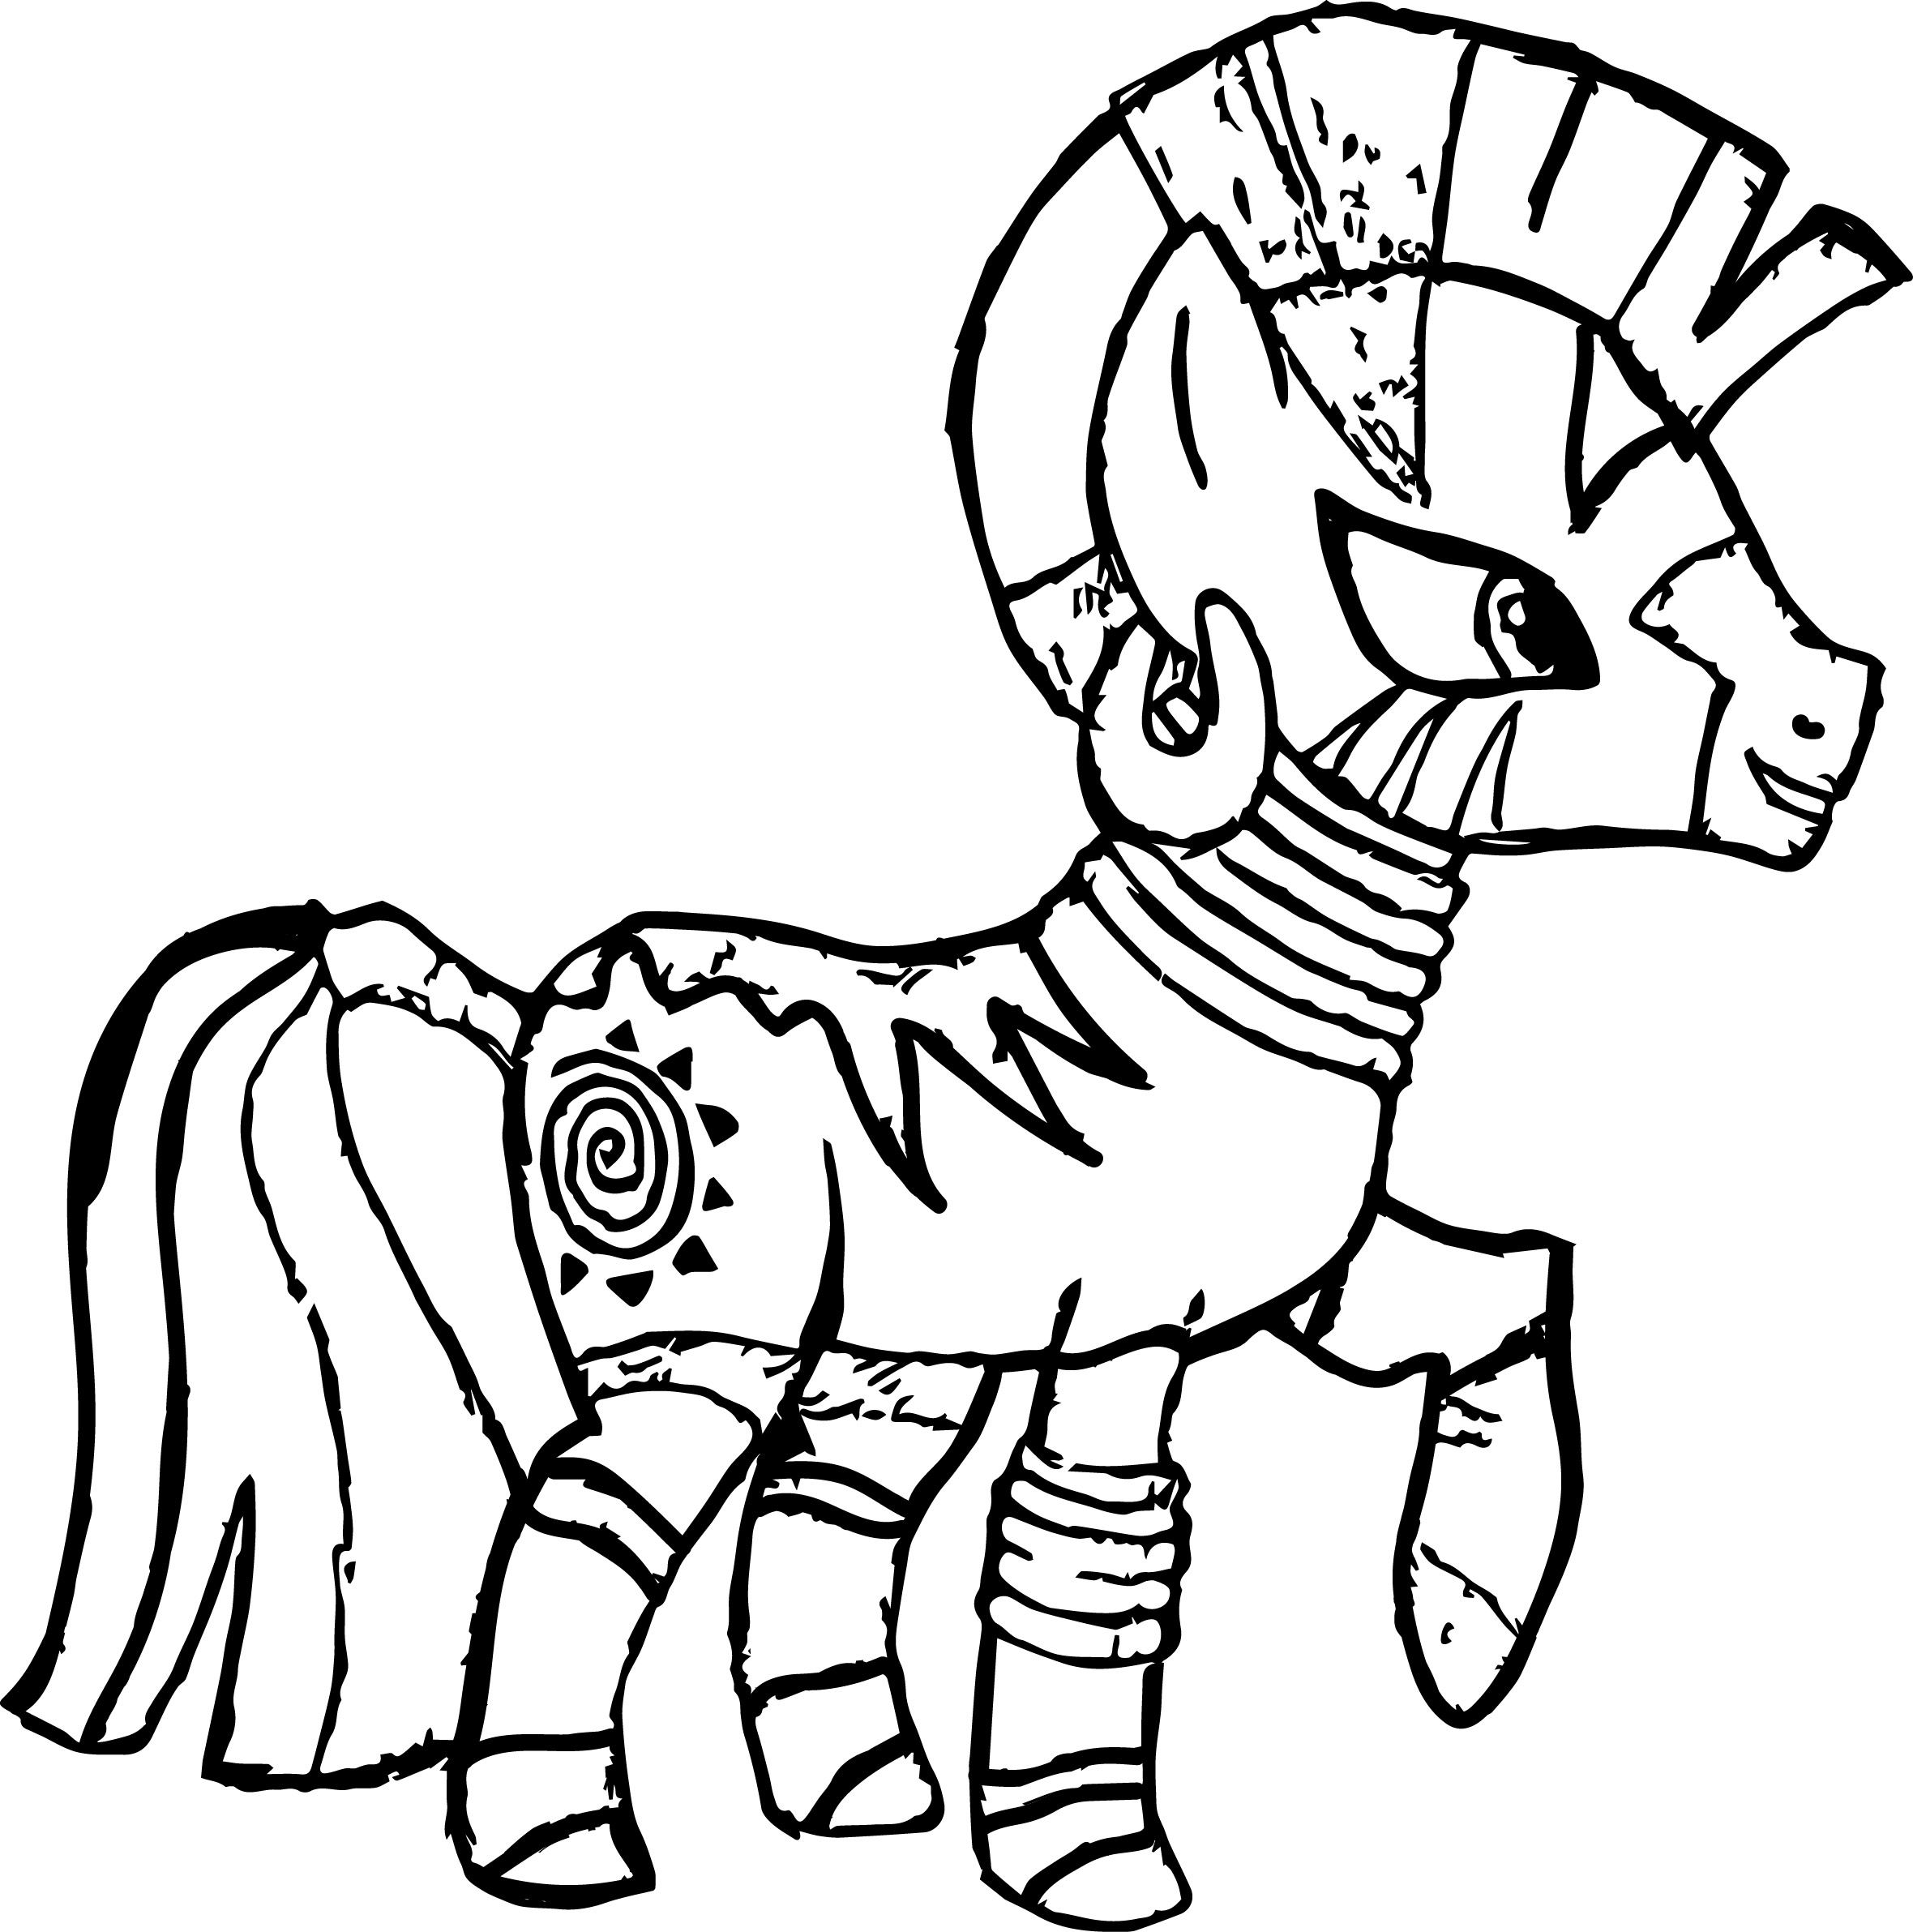 Zecora The Zebra Coloring Page